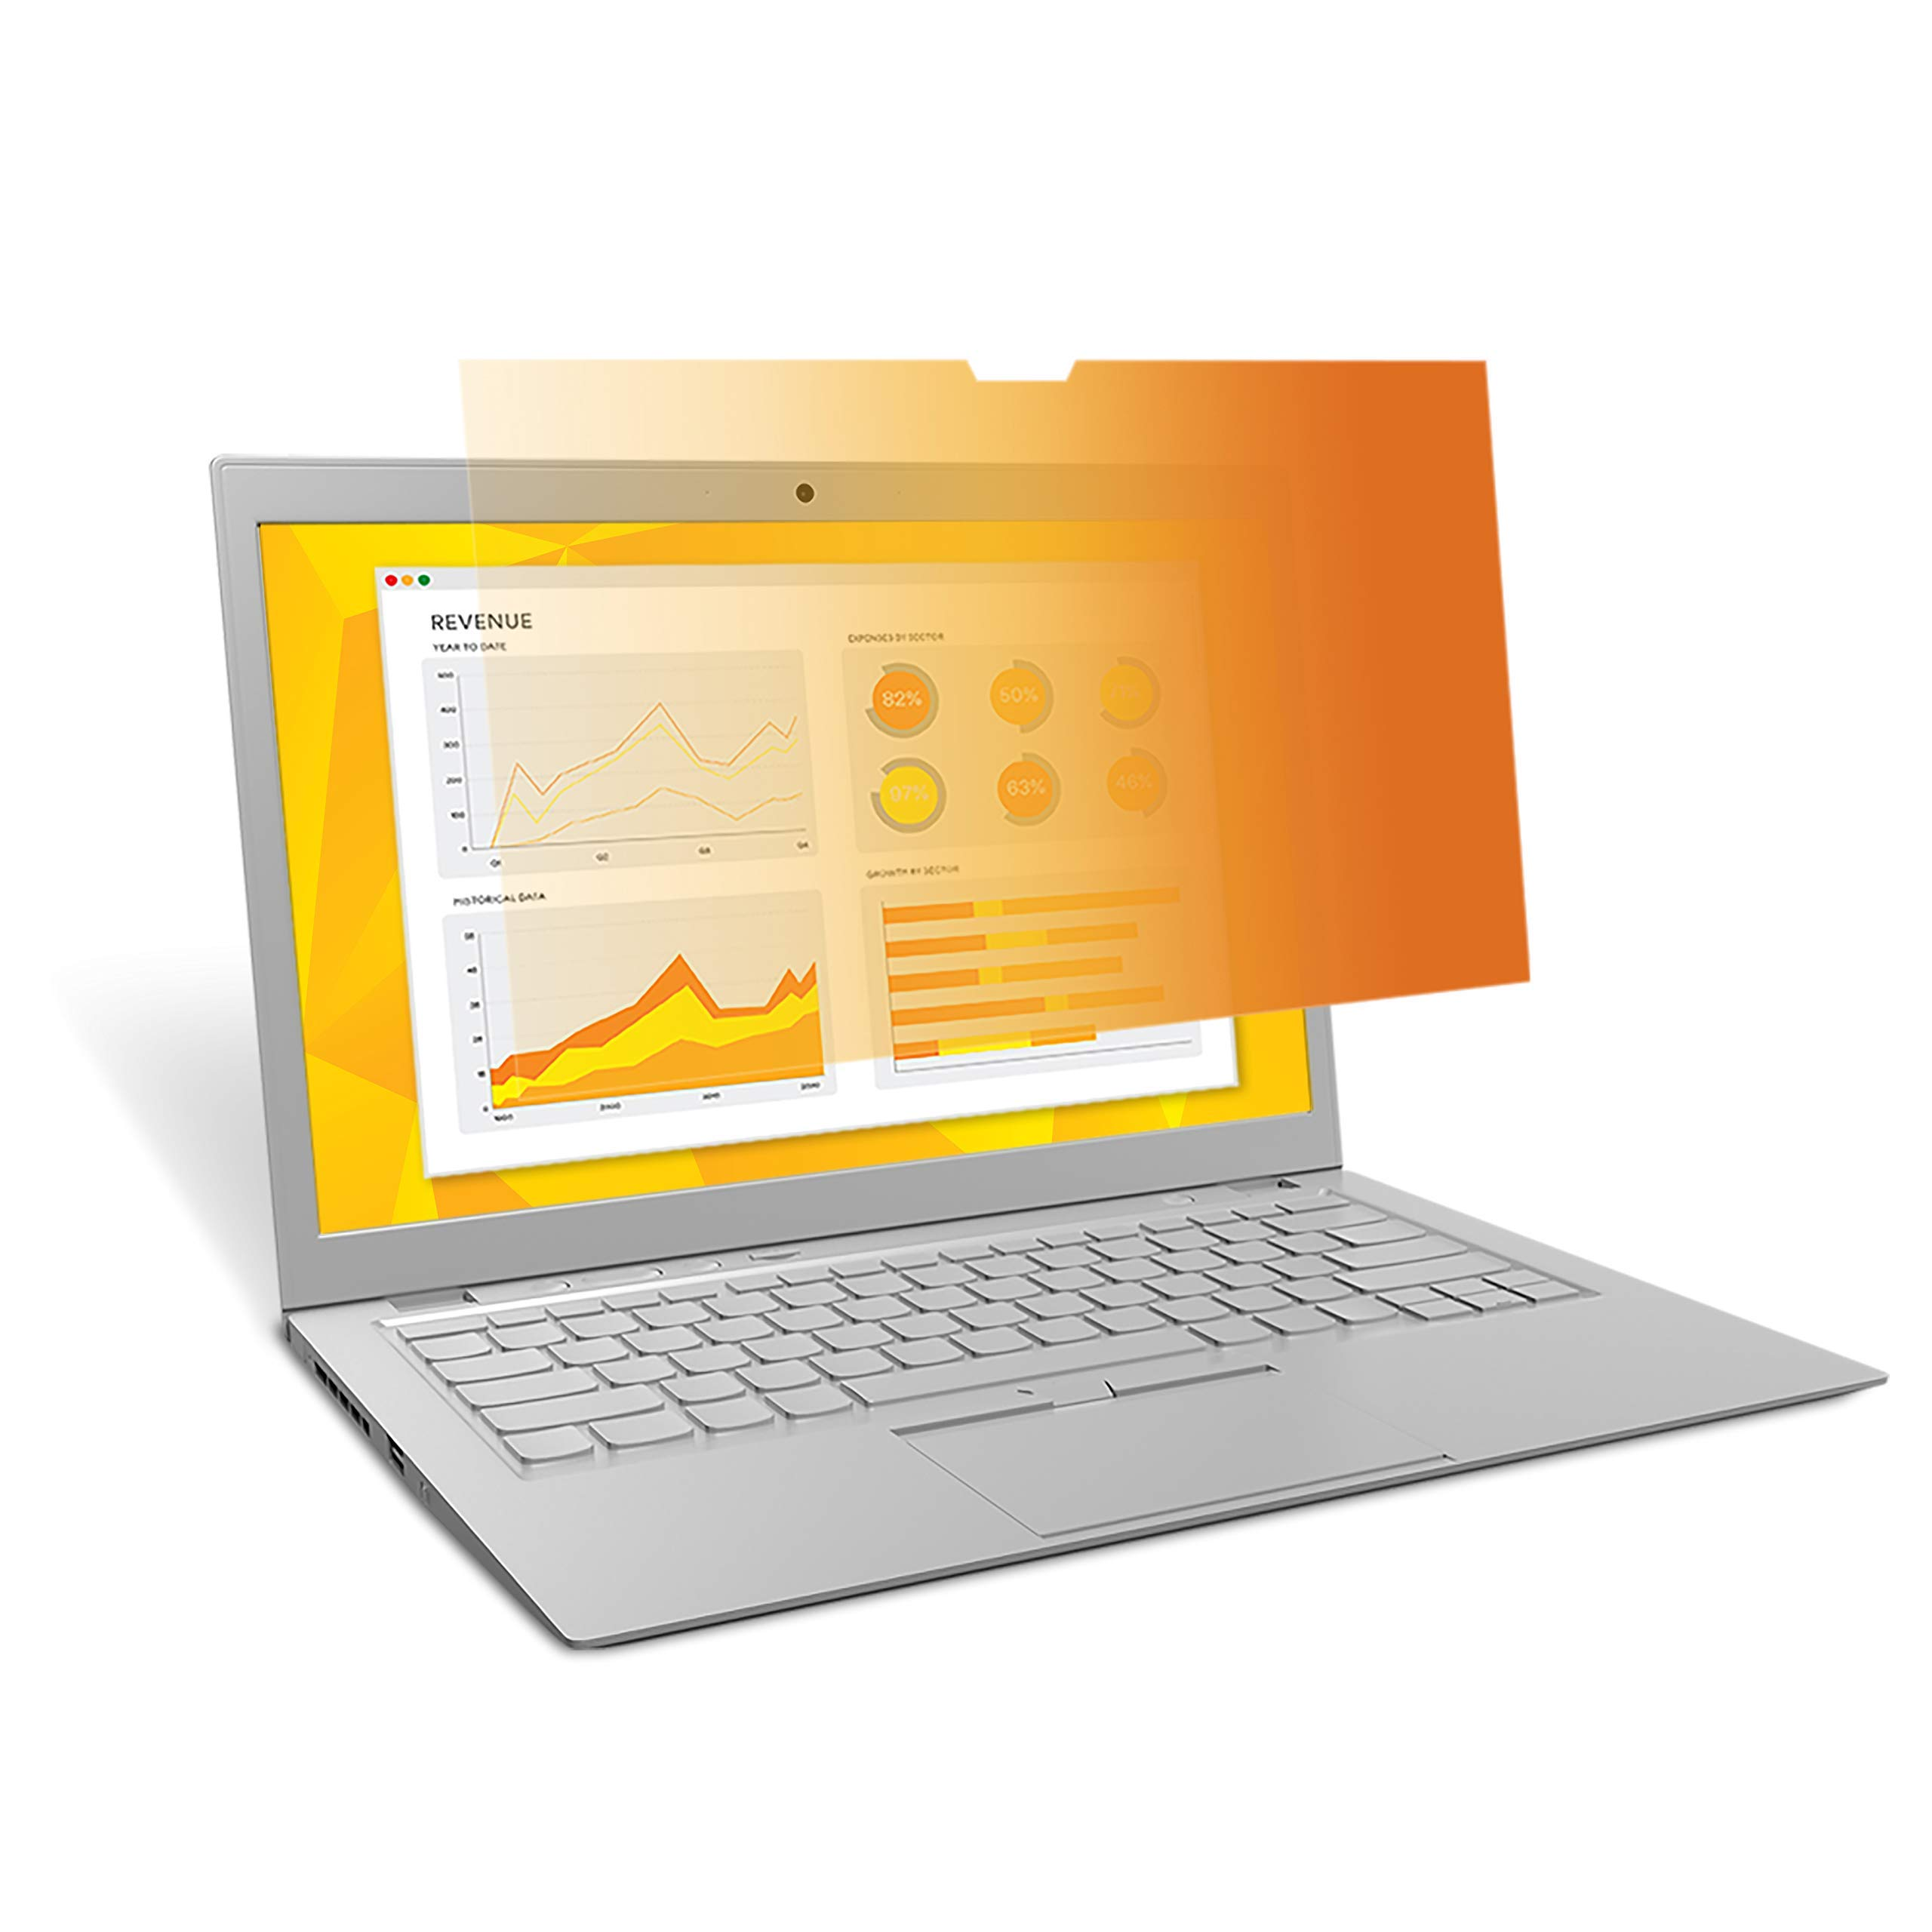 3M Privacy Filter for 14'' Laptop - Gold - Works for Lenovo X1 Carbon - Widescreen 16:9 - GF140W9B (Renewed)